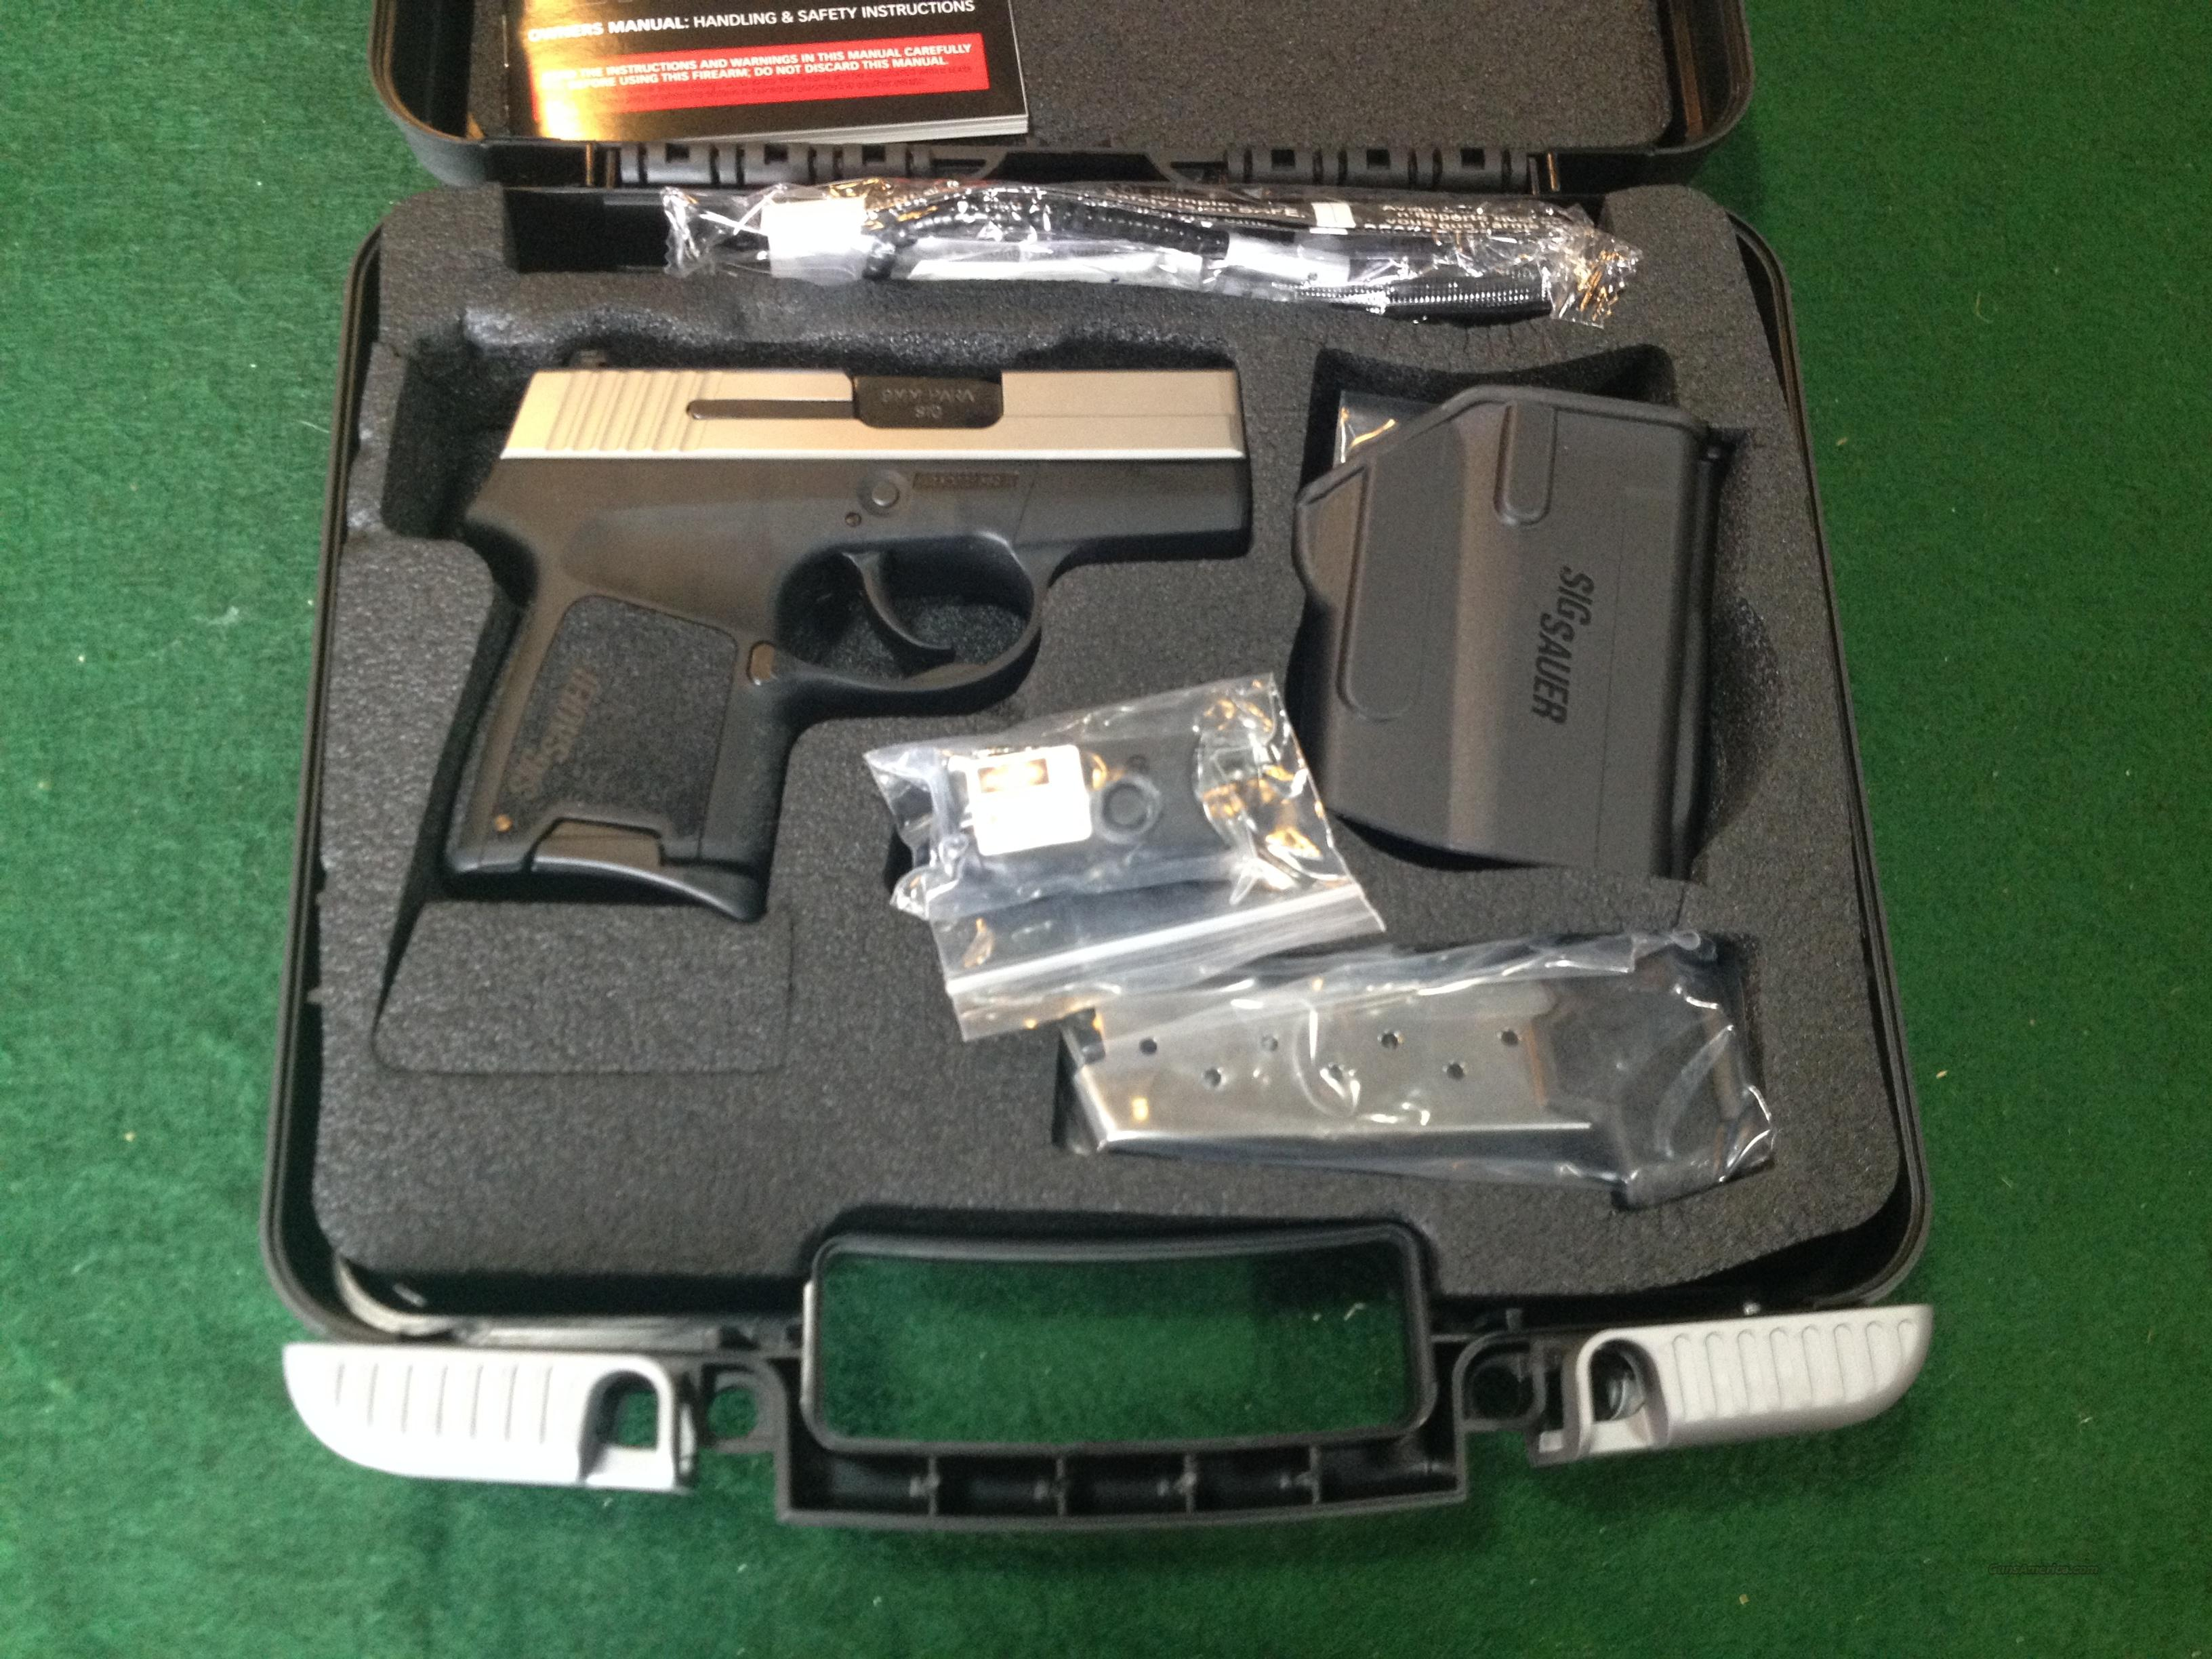 Sig Sauer P290RS Two-Tone 9mm with Laser  Guns > Pistols > Sig - Sauer/Sigarms Pistols > P290